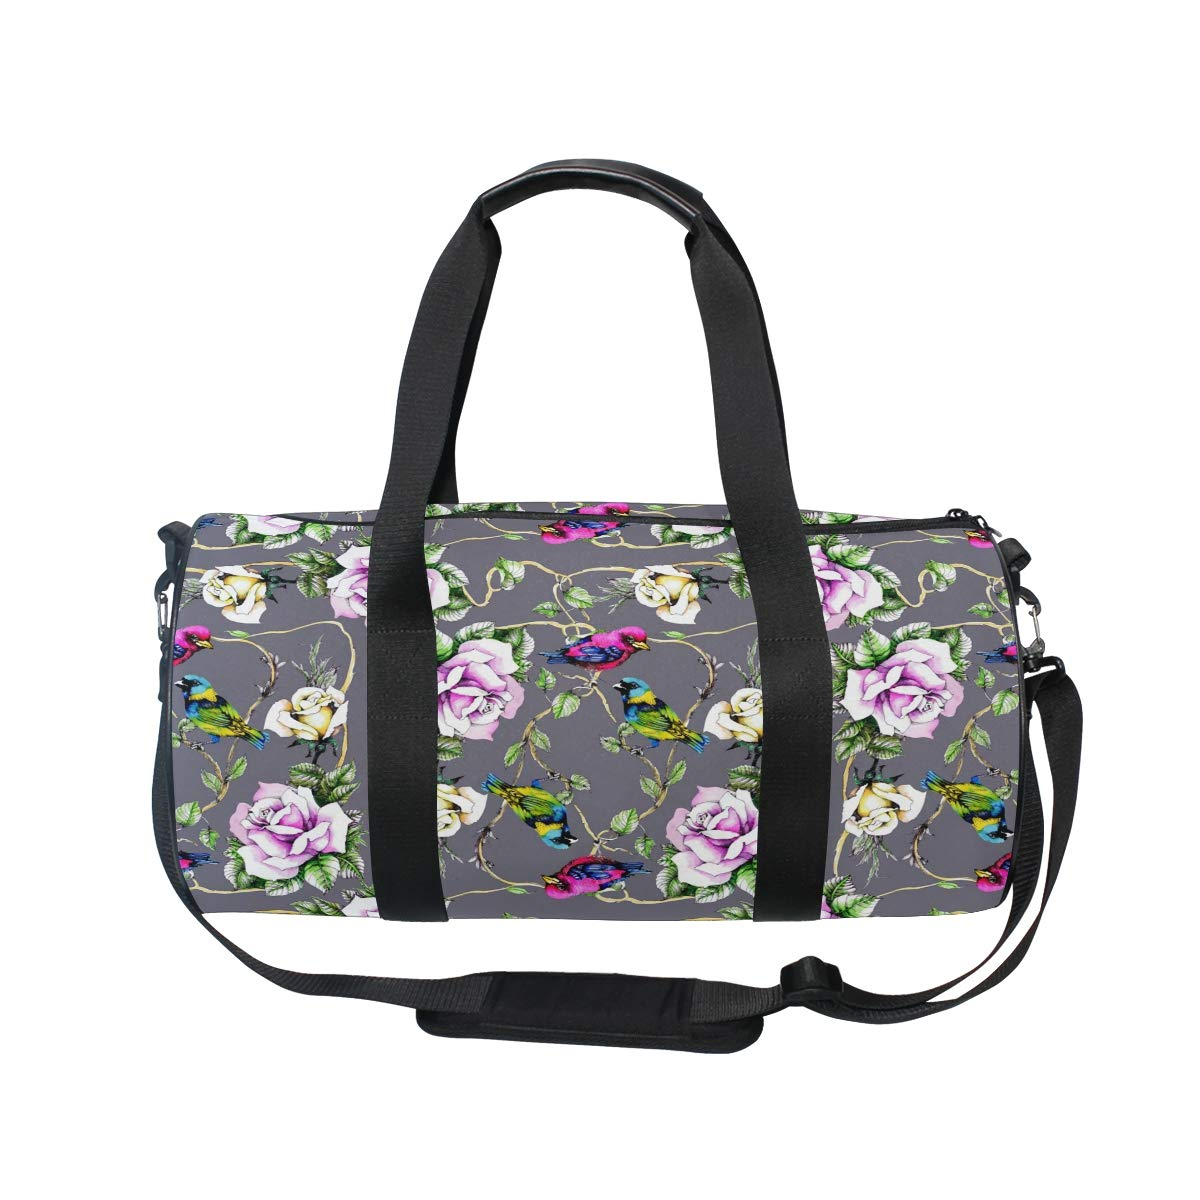 WIHVE Watercolor Bird Rose Flower Floral Sports Gym Bag Travel Overnight Duffel Bag for Men and Women